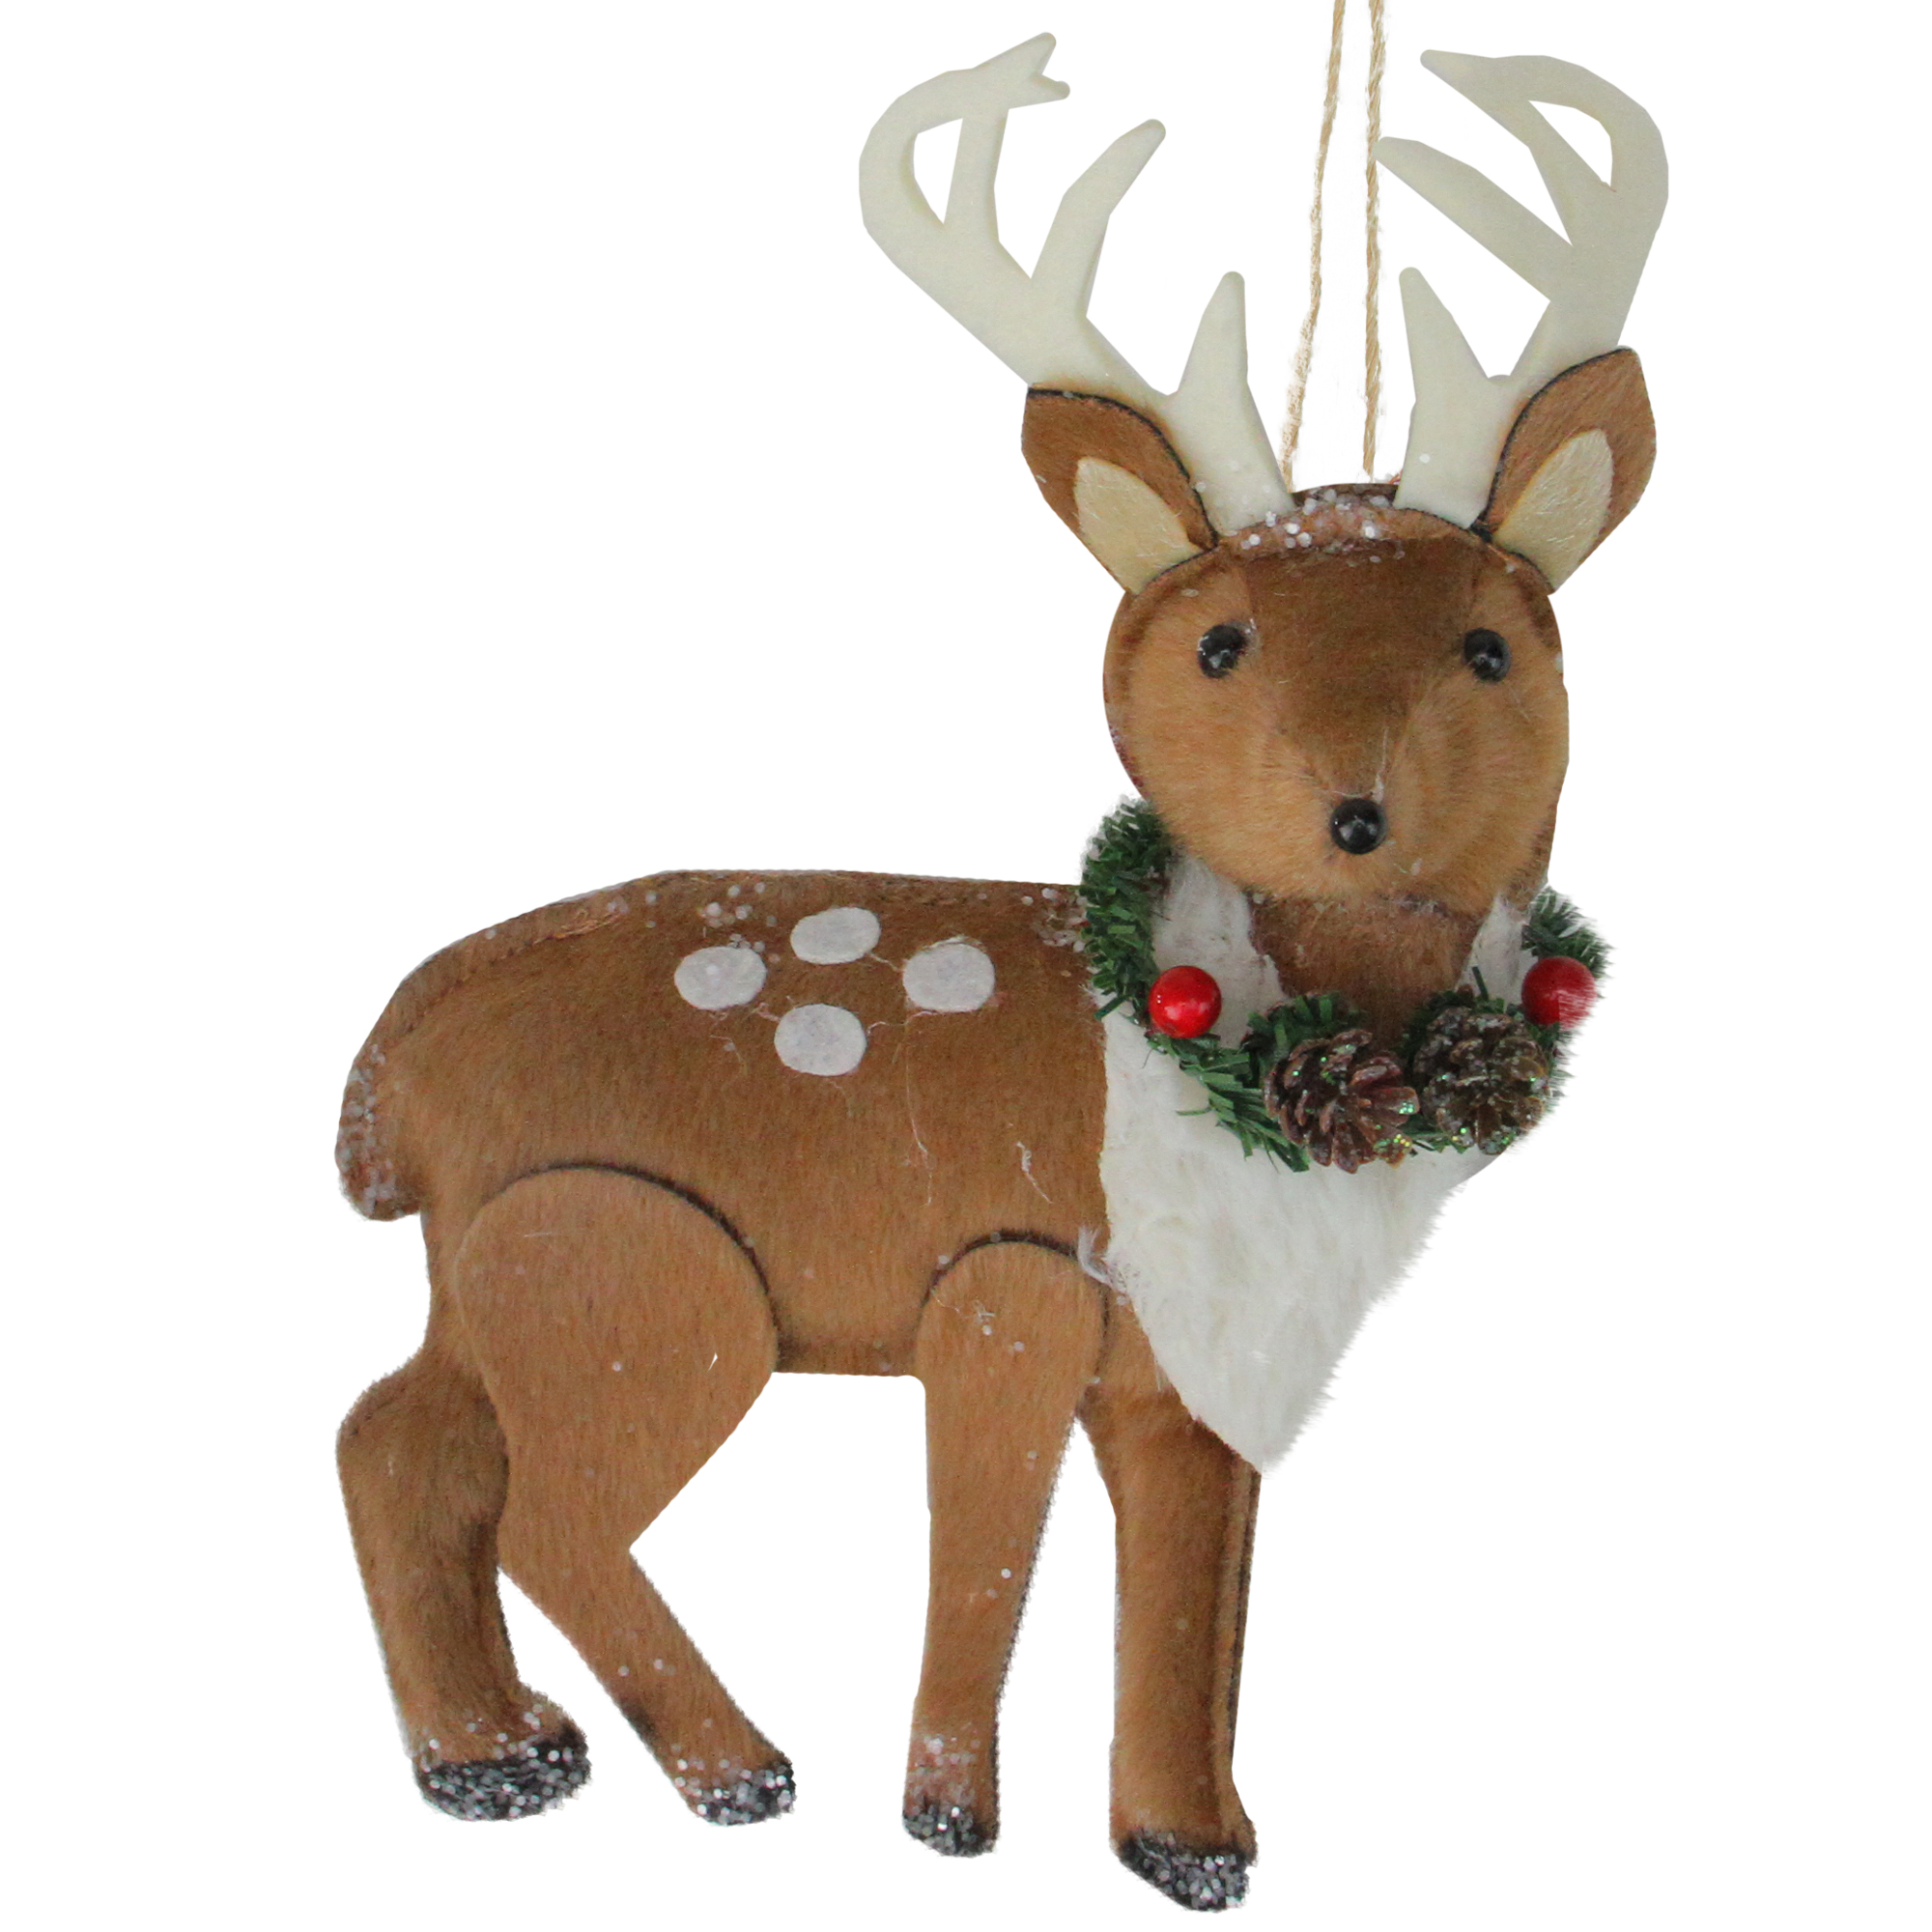 Brown and White Spotted Stuffed Deer with Antlers Christmas Ornament